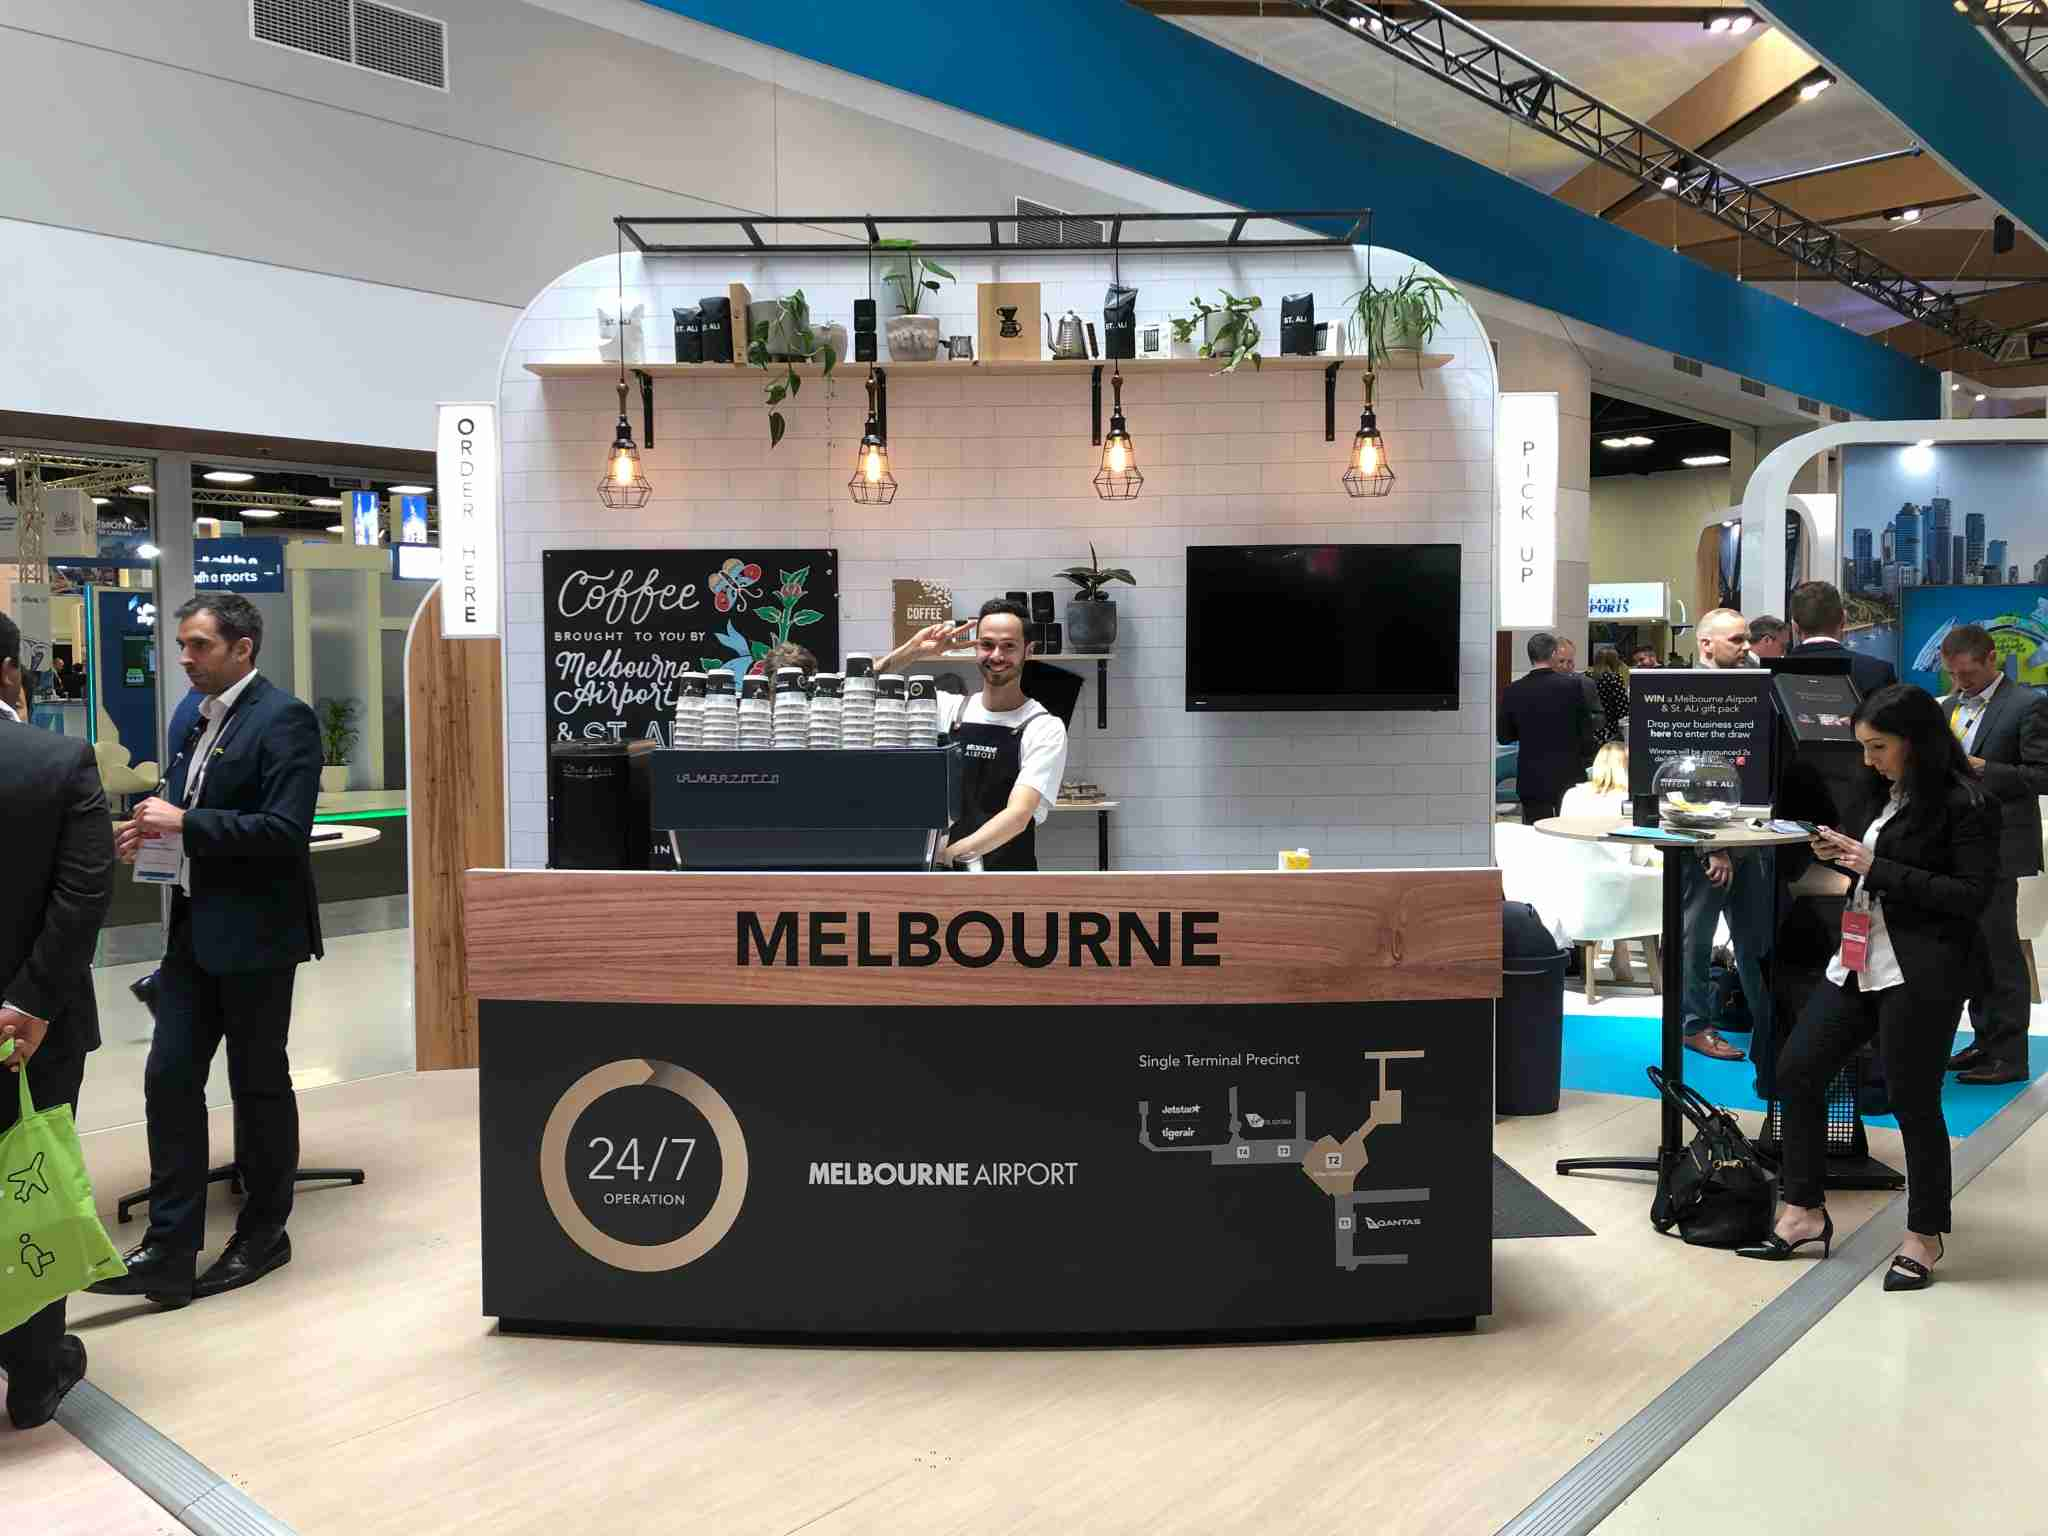 ST ALi was featured on the Melbourne Airport stand at World Routes. (Photo by Edward Russell/TPG)